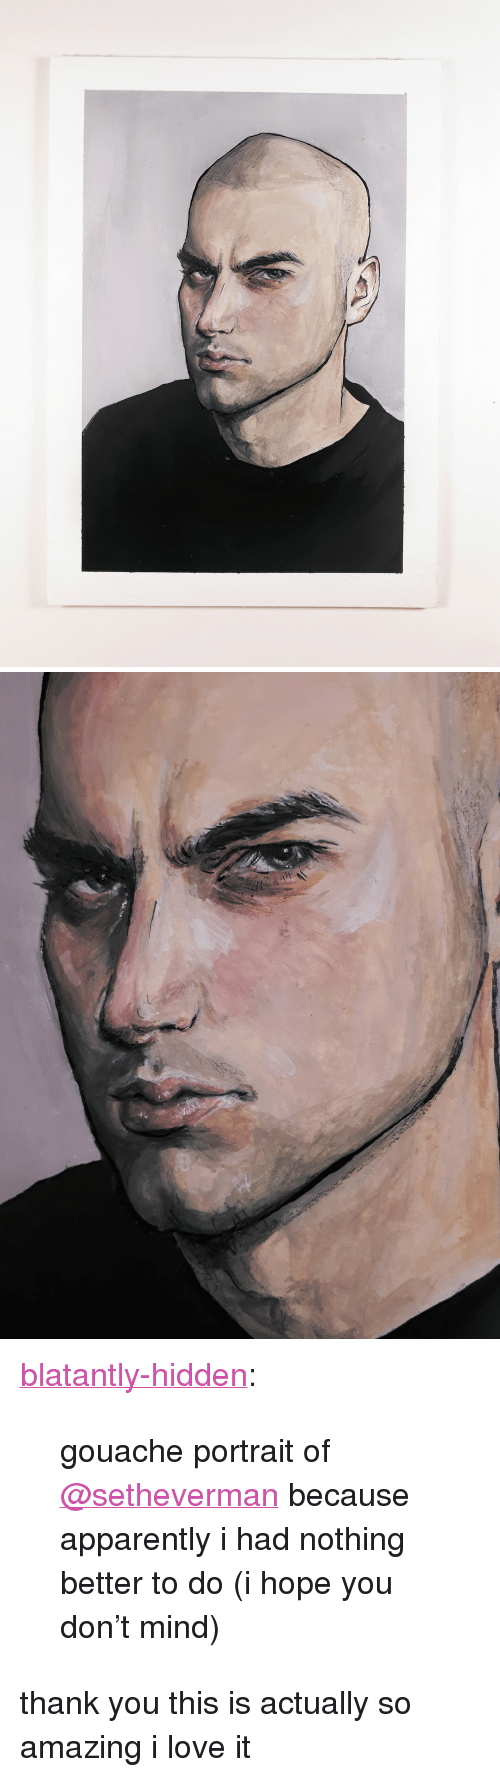 """so amazing: <p><a href=""""http://blatantly-hidden.tumblr.com/post/169281065359/gouache-portrait-of-setheverman-because"""" class=""""tumblr_blog"""">blatantly-hidden</a>:</p><blockquote><p>gouache portrait of <a class=""""tumblelog"""" href=""""https://tmblr.co/mBzwehFPuDrE1Hl_h5zPkgQ"""">@setheverman</a> because apparently i had nothing better to do  (i hope you don't mind)<br/></p></blockquote> <p>thank you this is actually so amazing i love it</p>"""